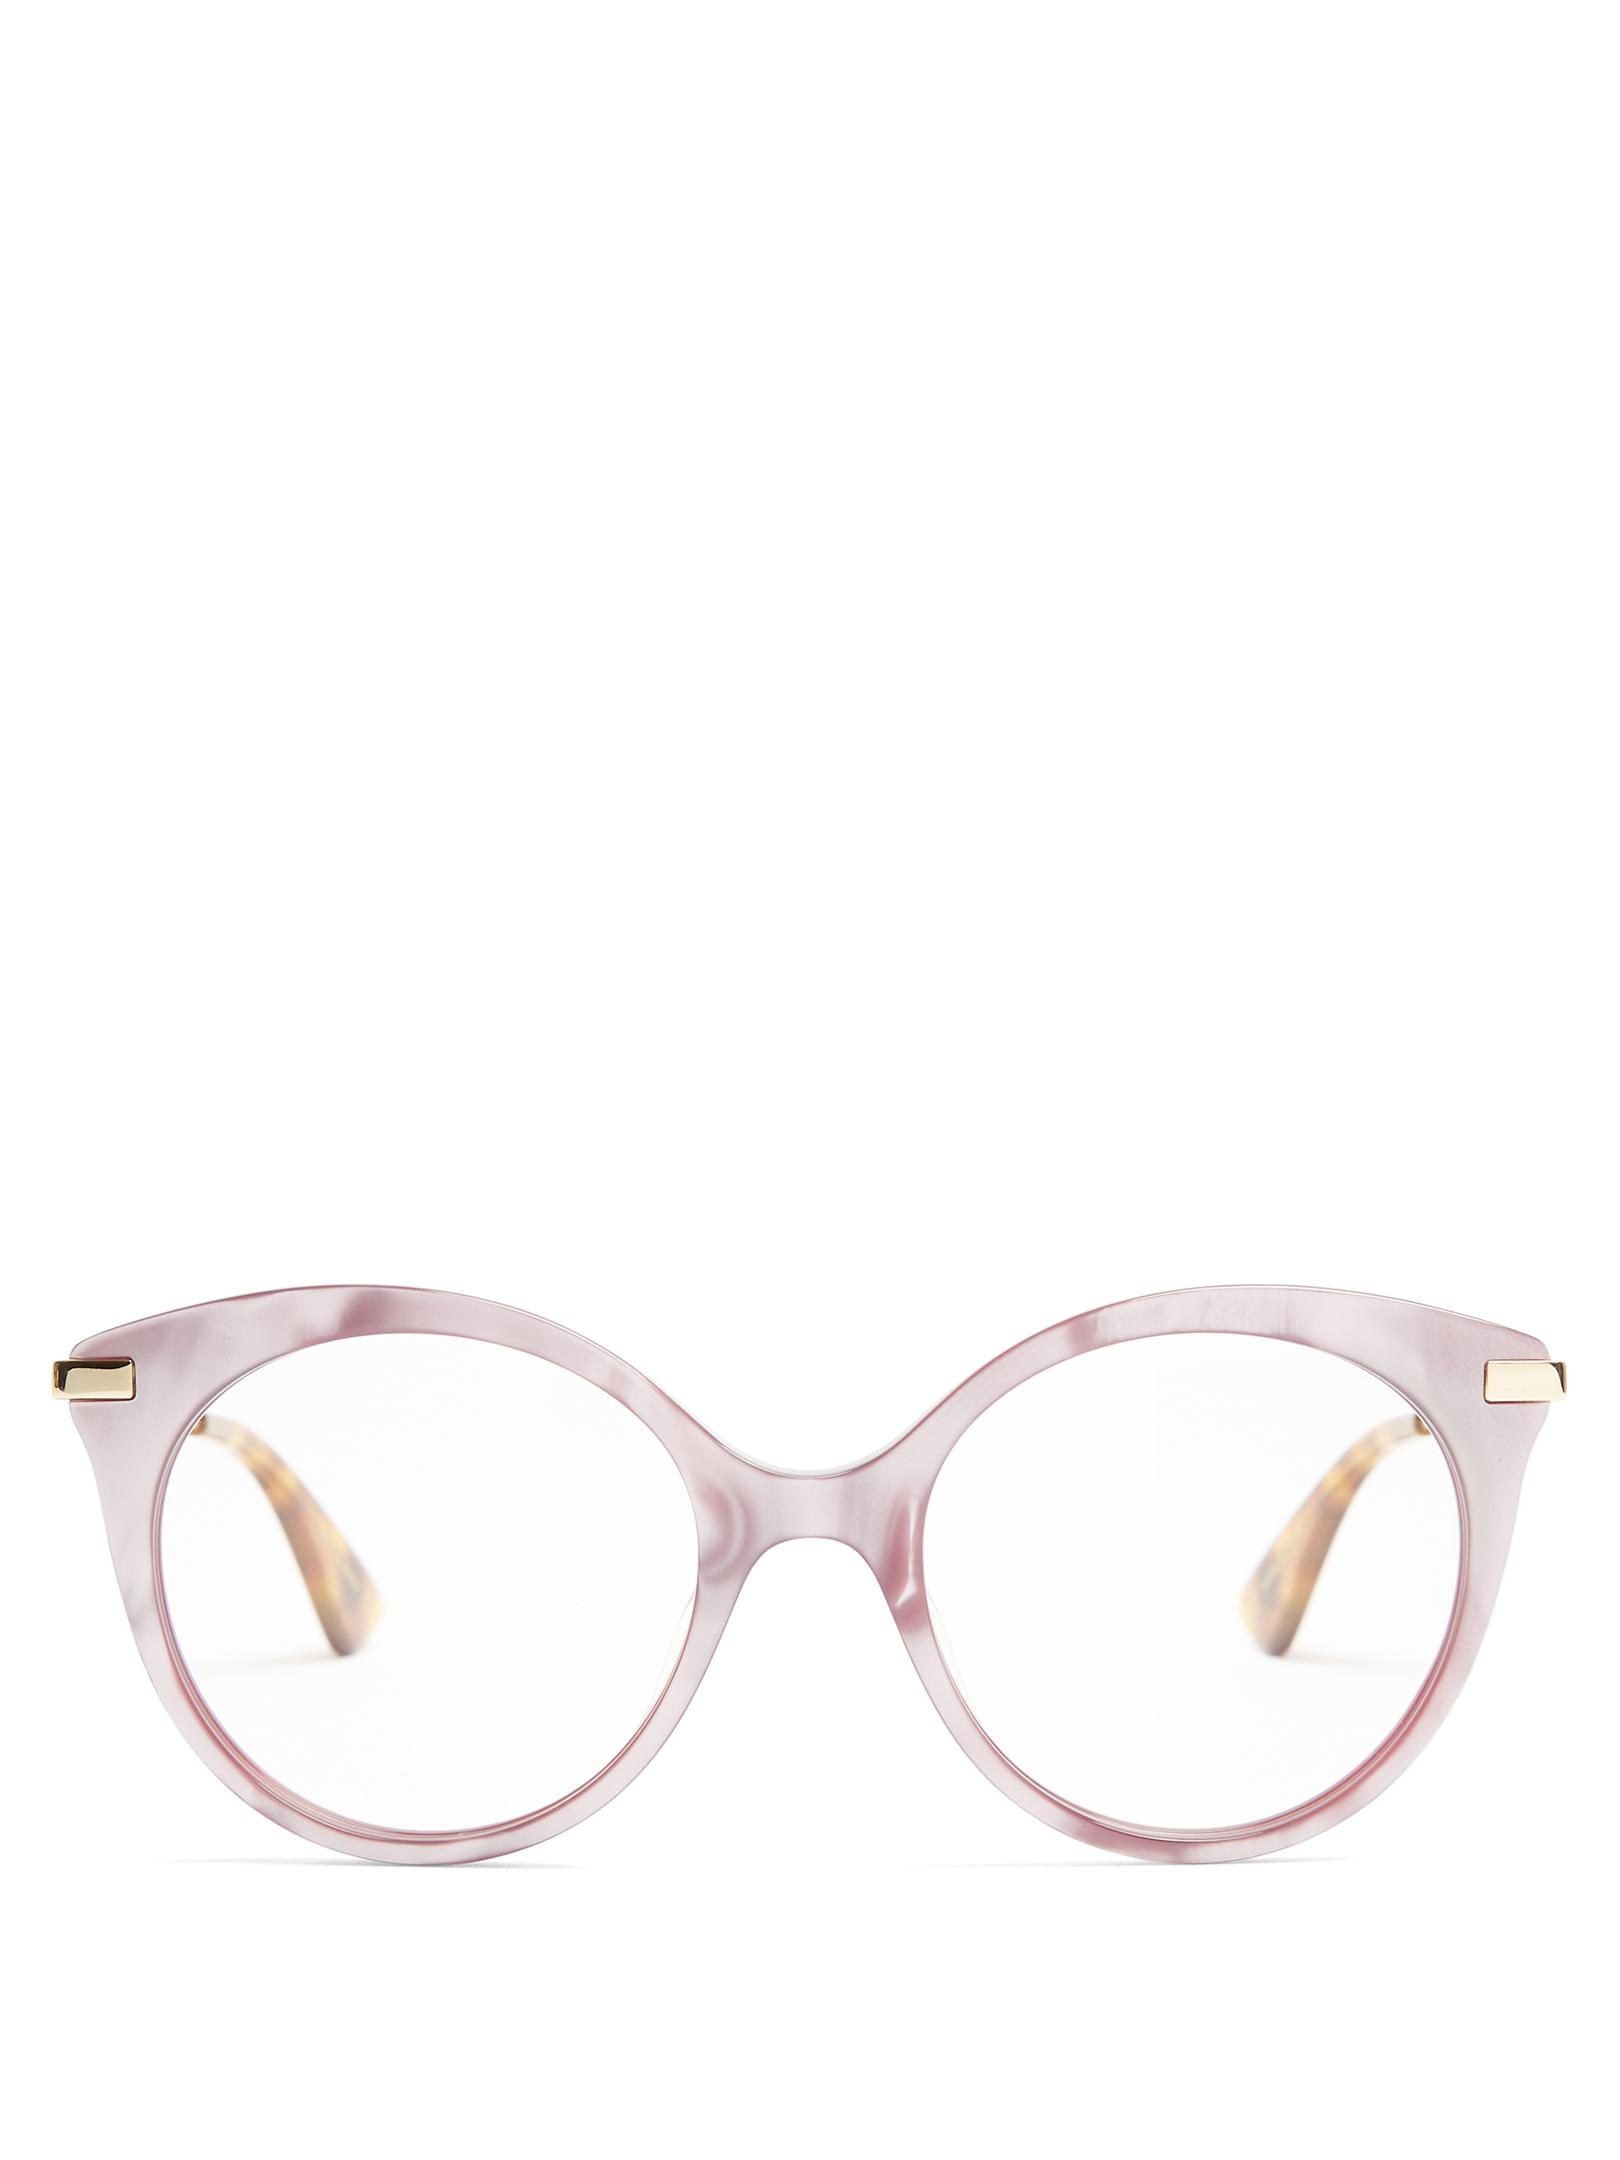 9e3af14b6c Gucci Round-frame Mother-of-pearl Acetate Glasses in Pink - Lyst